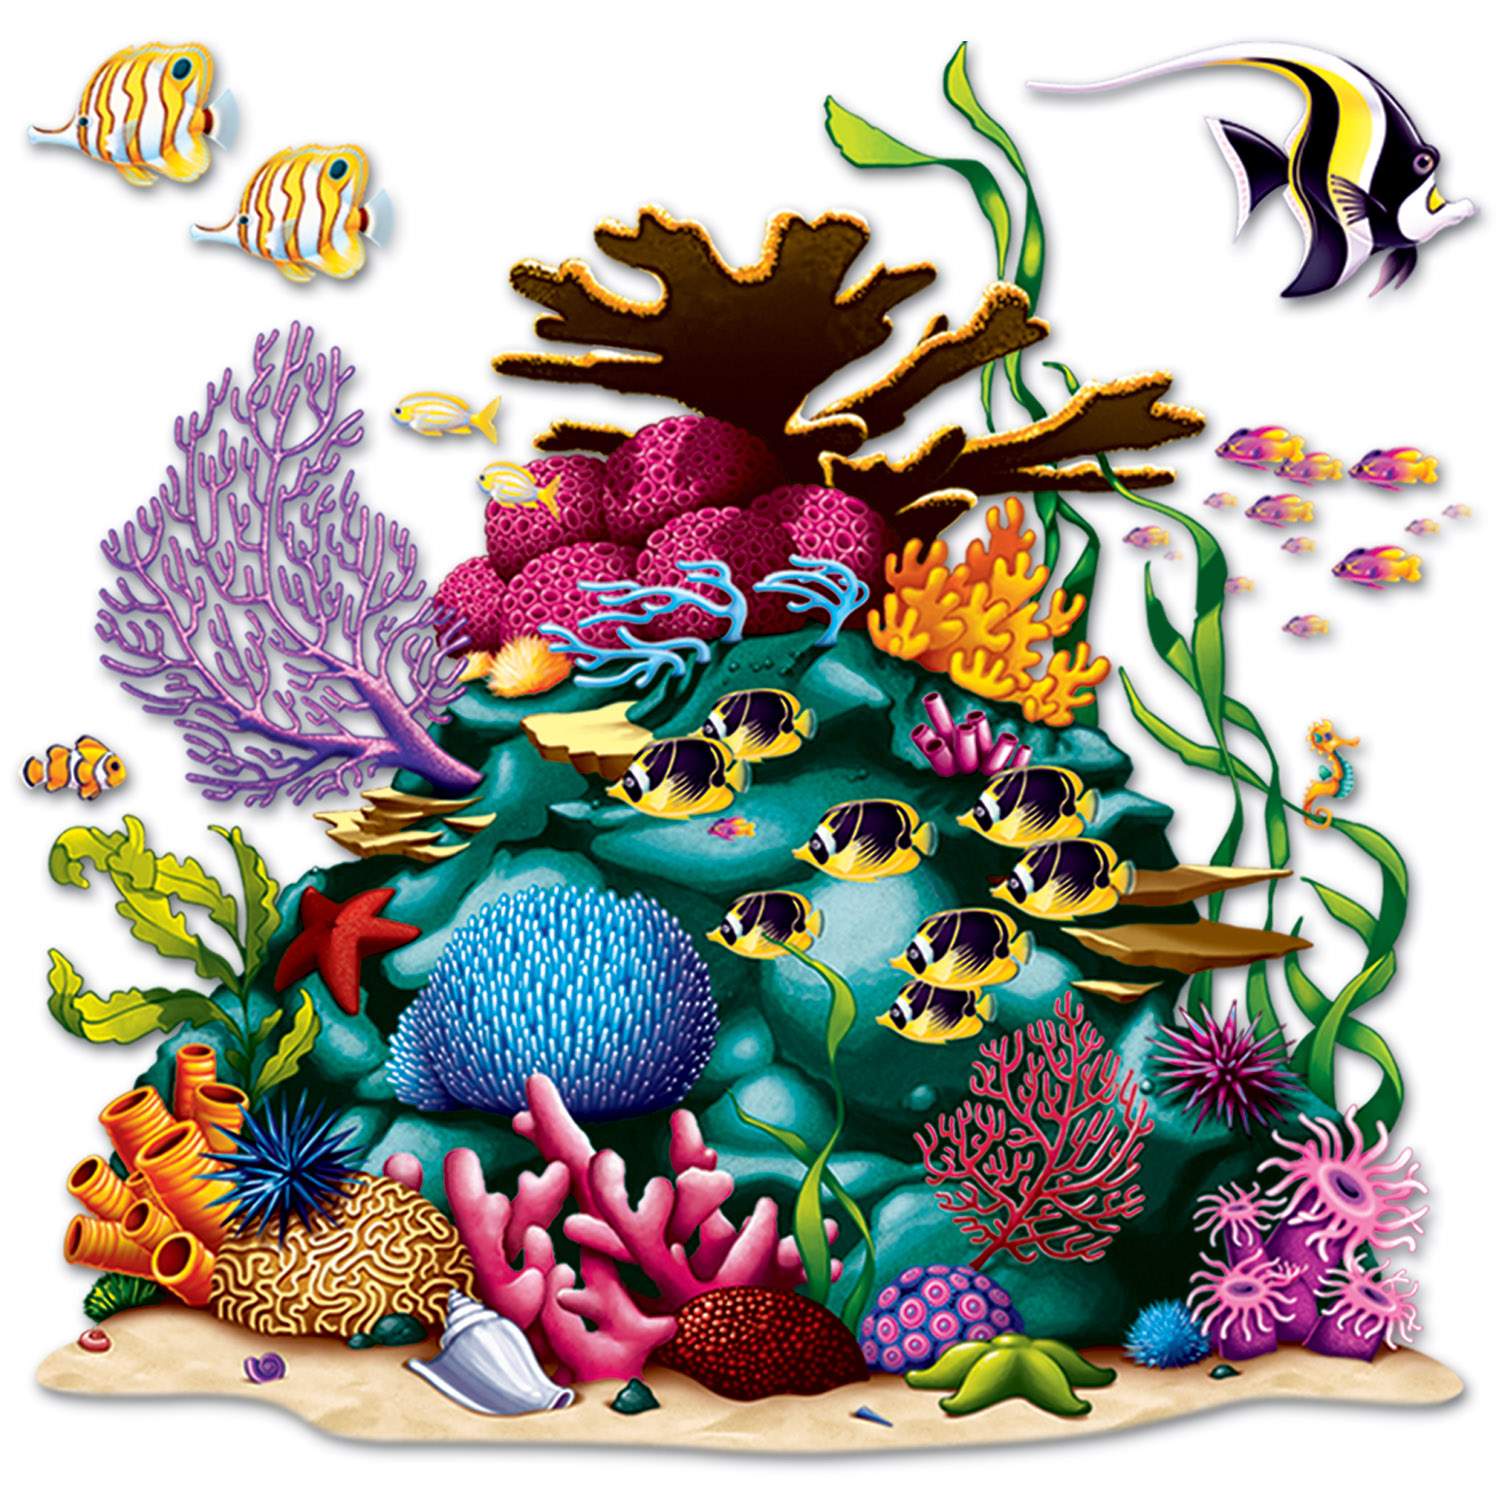 Classroom Hanging Decor ~ Under the sea coral reef prop